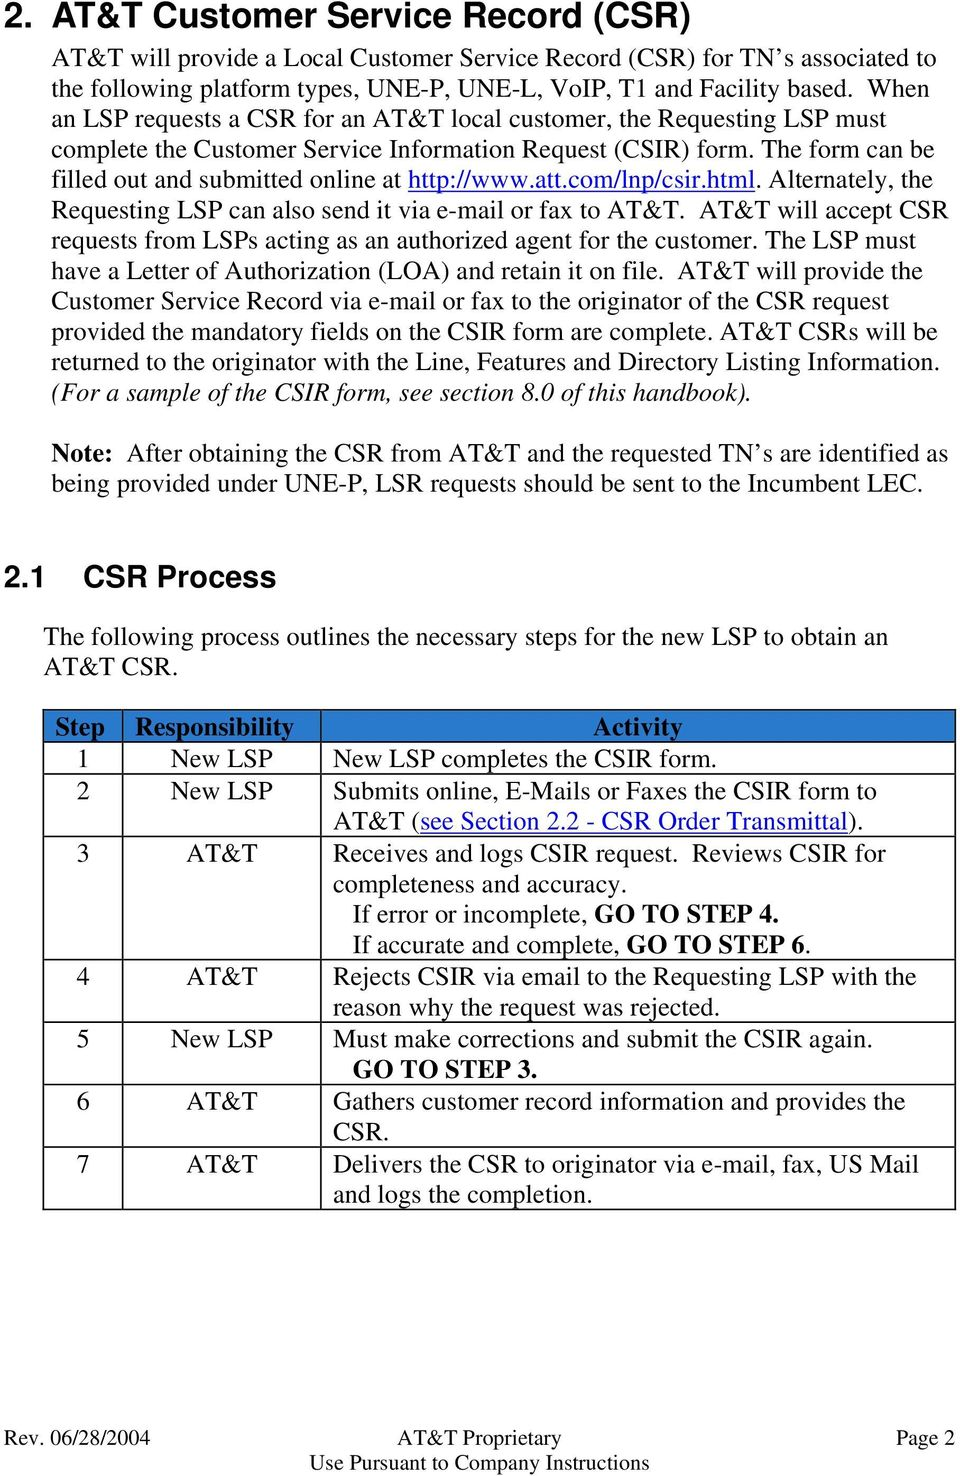 The form can be filled out and submitted online at http://www.att.com/lnp/csir.html. Alternately, the Requesting LSP can also send it via e-mail or fax to AT&T.